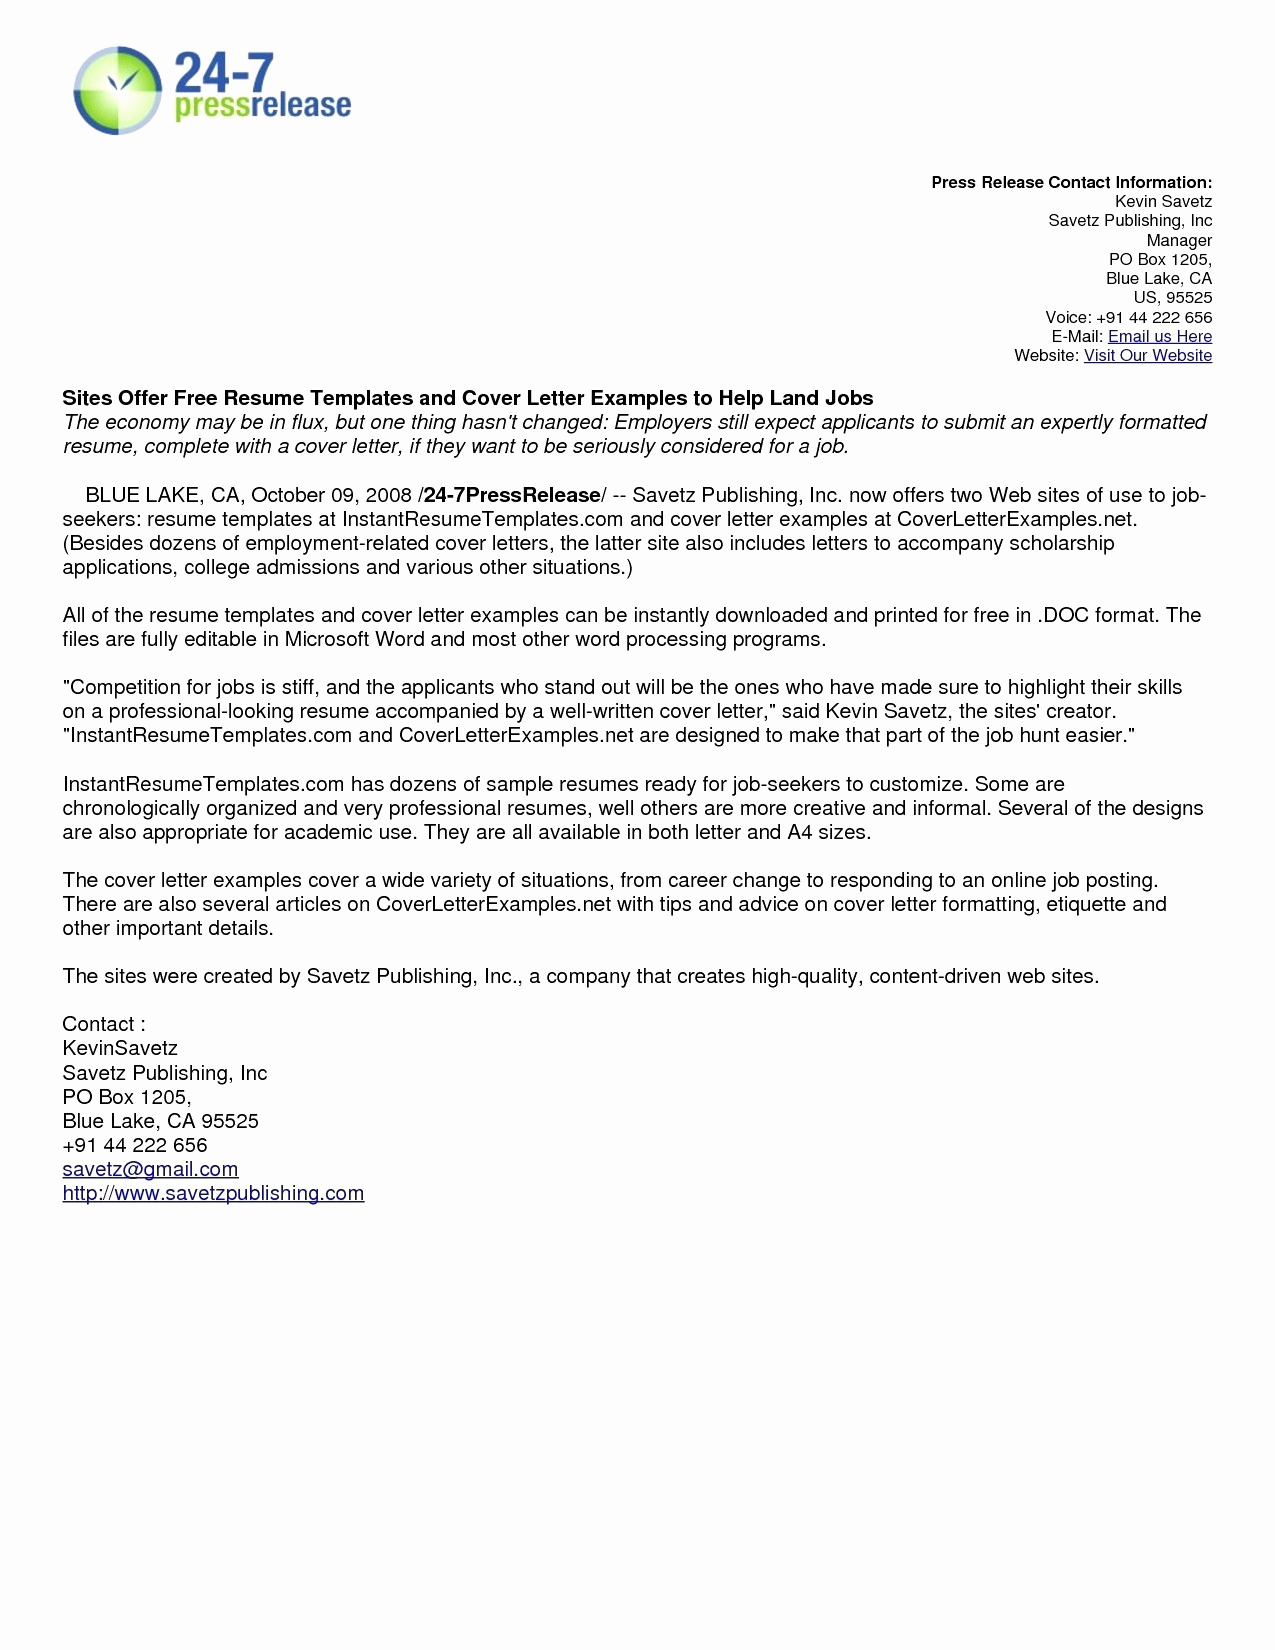 Direct Care Worker Resume - 20 Cover Letter for Direct Care Worker